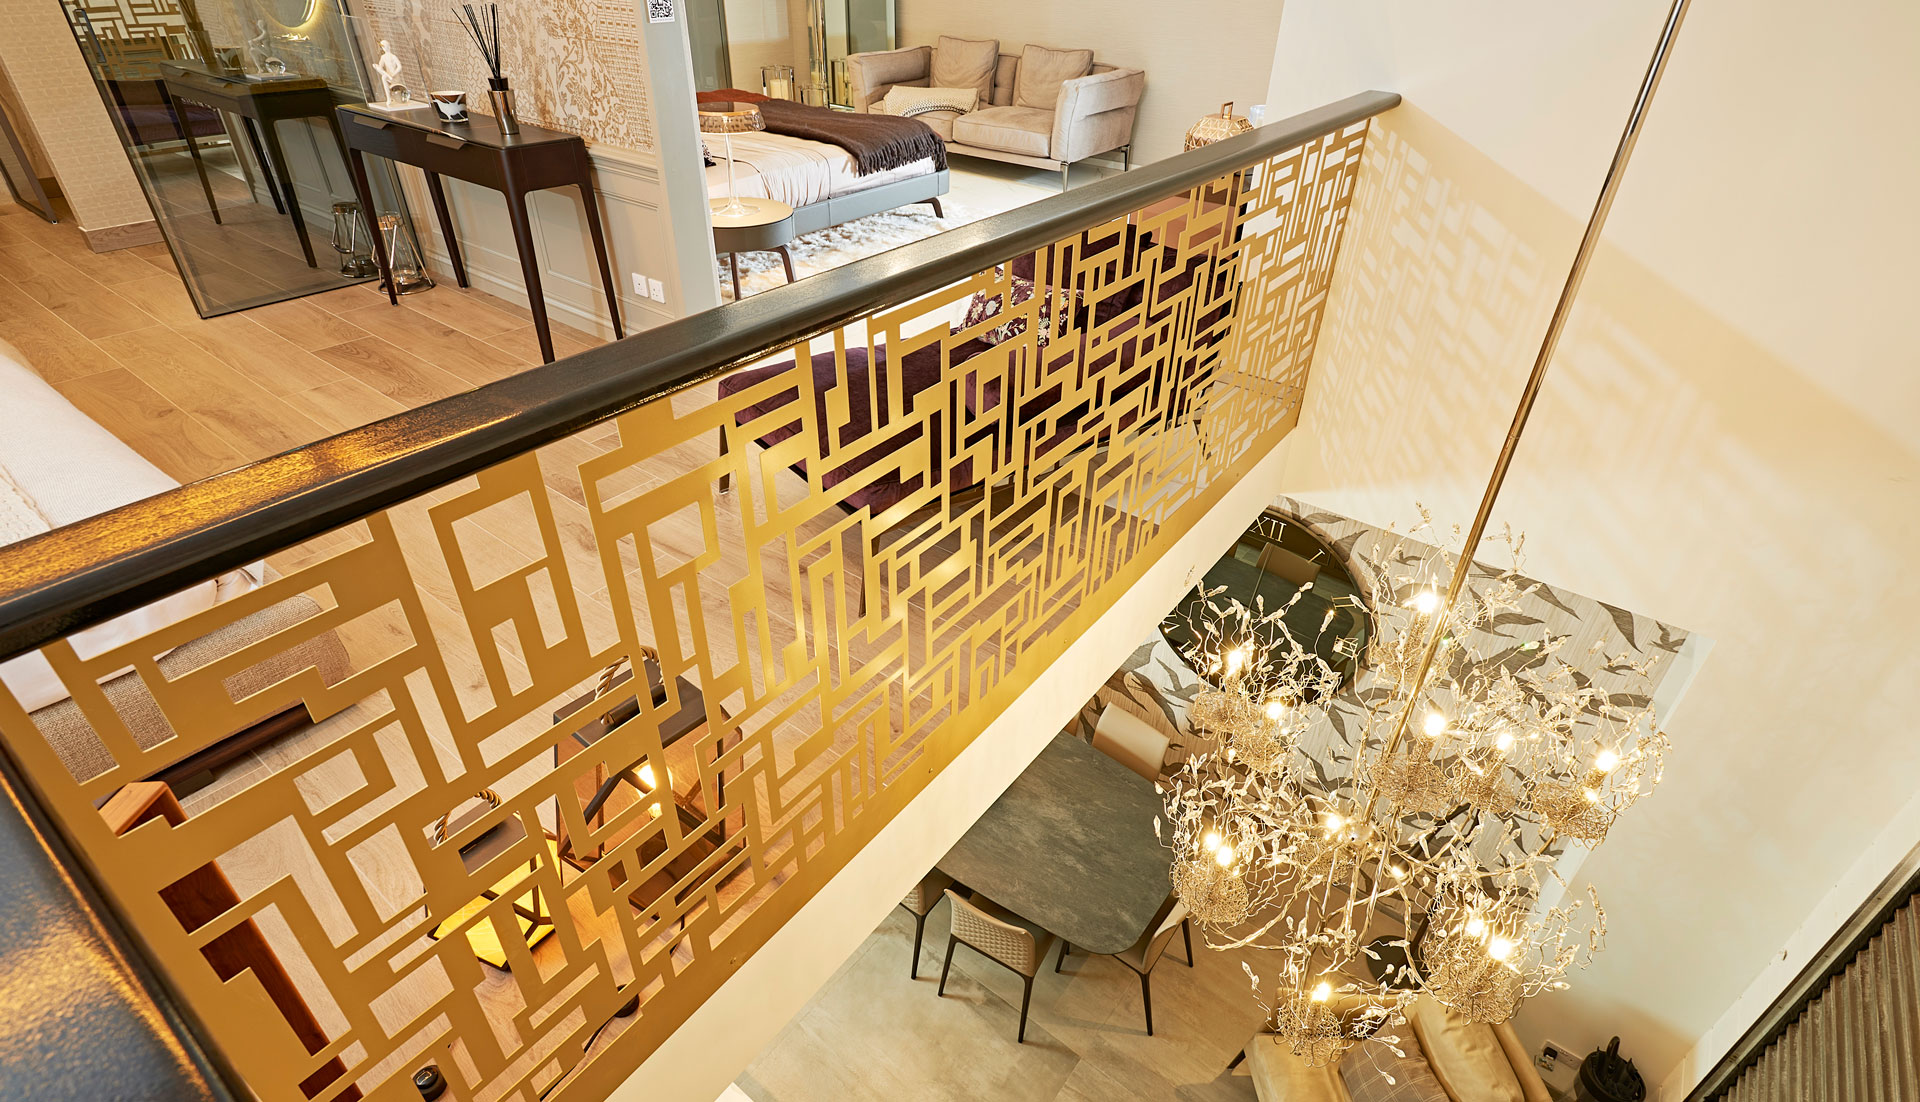 SHOWROOM ARCHITECTURAL FEATURES